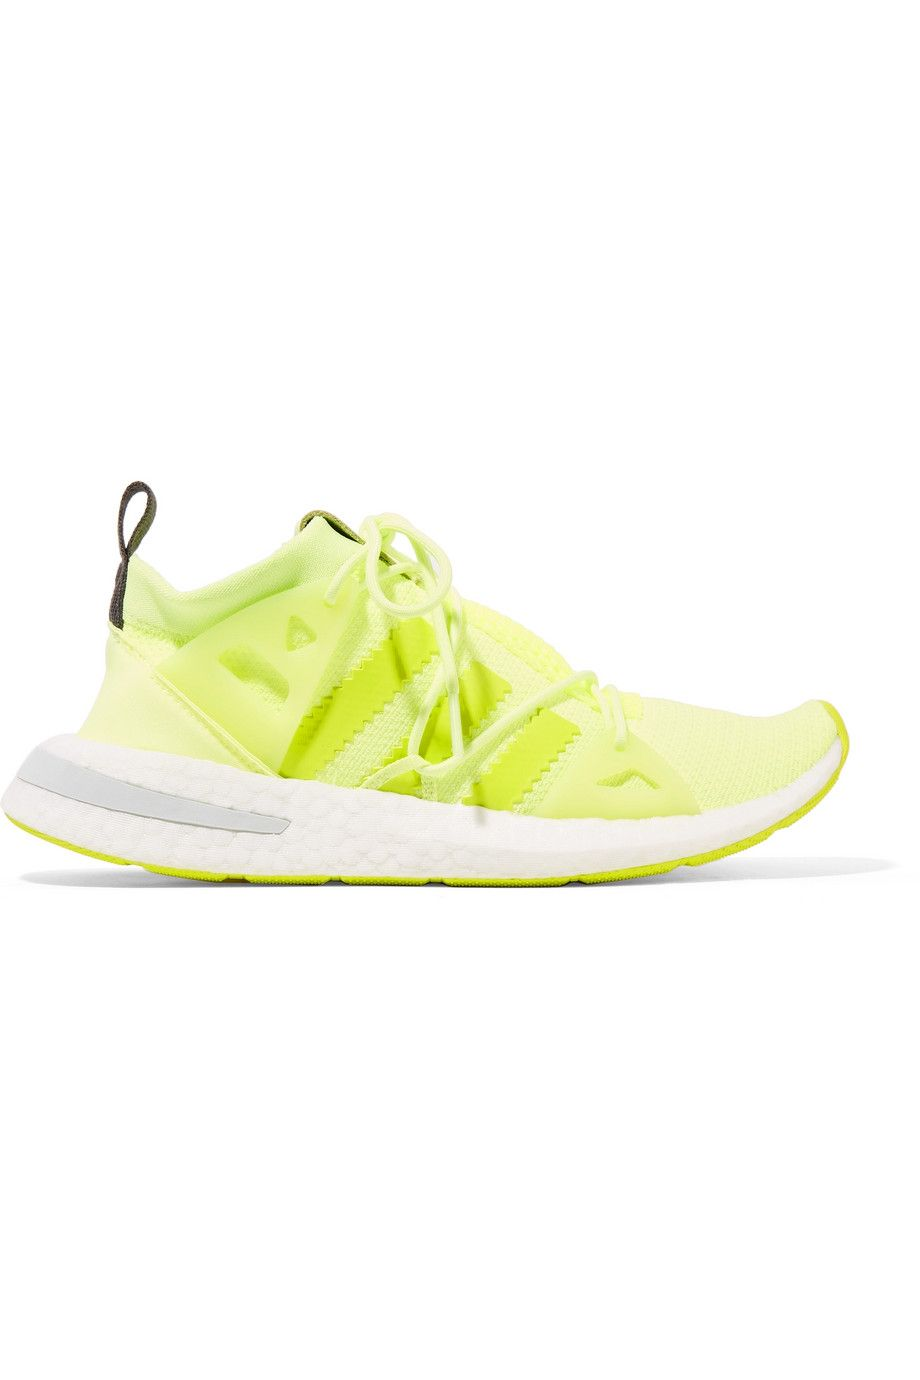 c7630793b99f adidas Originals - Arkyn rubber-trimmed neon mesh sneakers ...